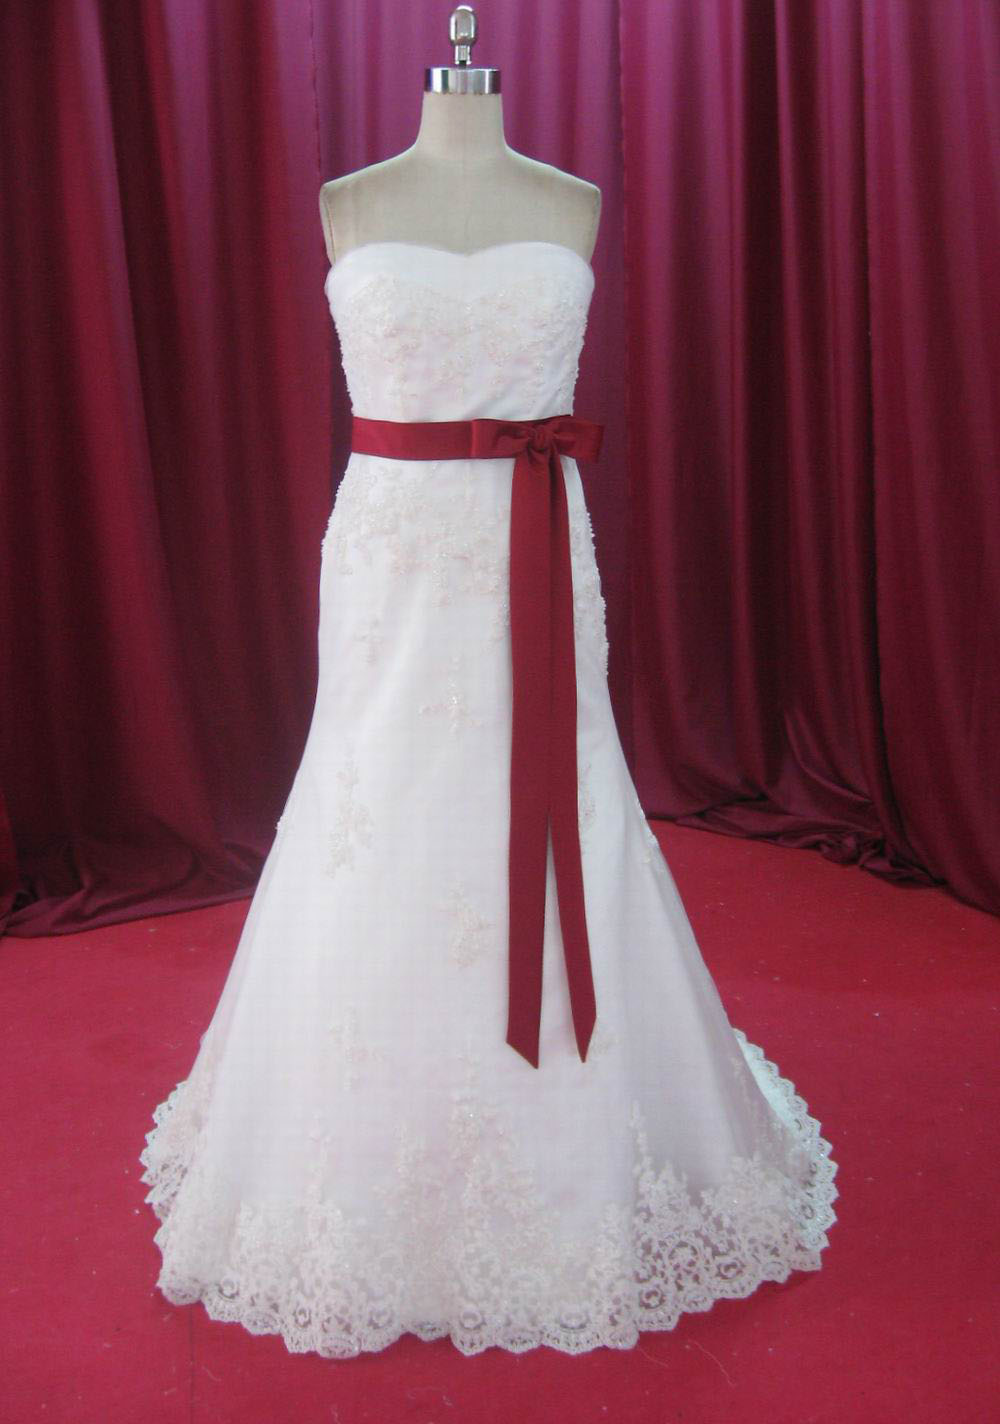 Designer dress quality factory outlet price wedding dresses for Designer wedding dresses outlet